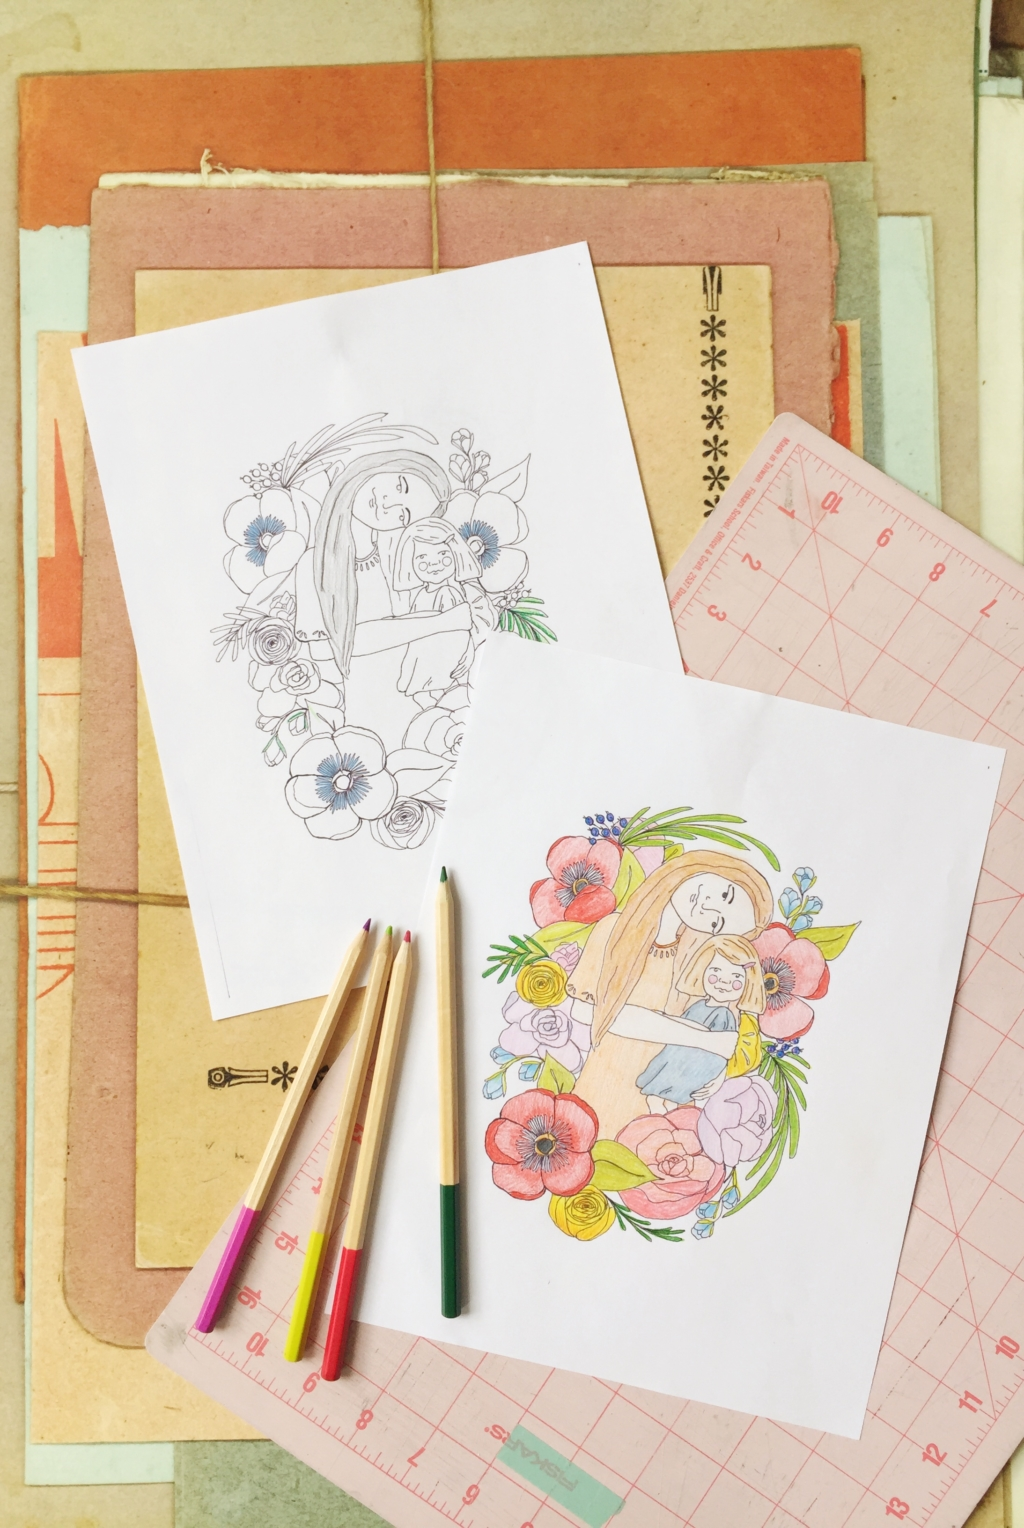 Coloring Page downloads for social distancing at home